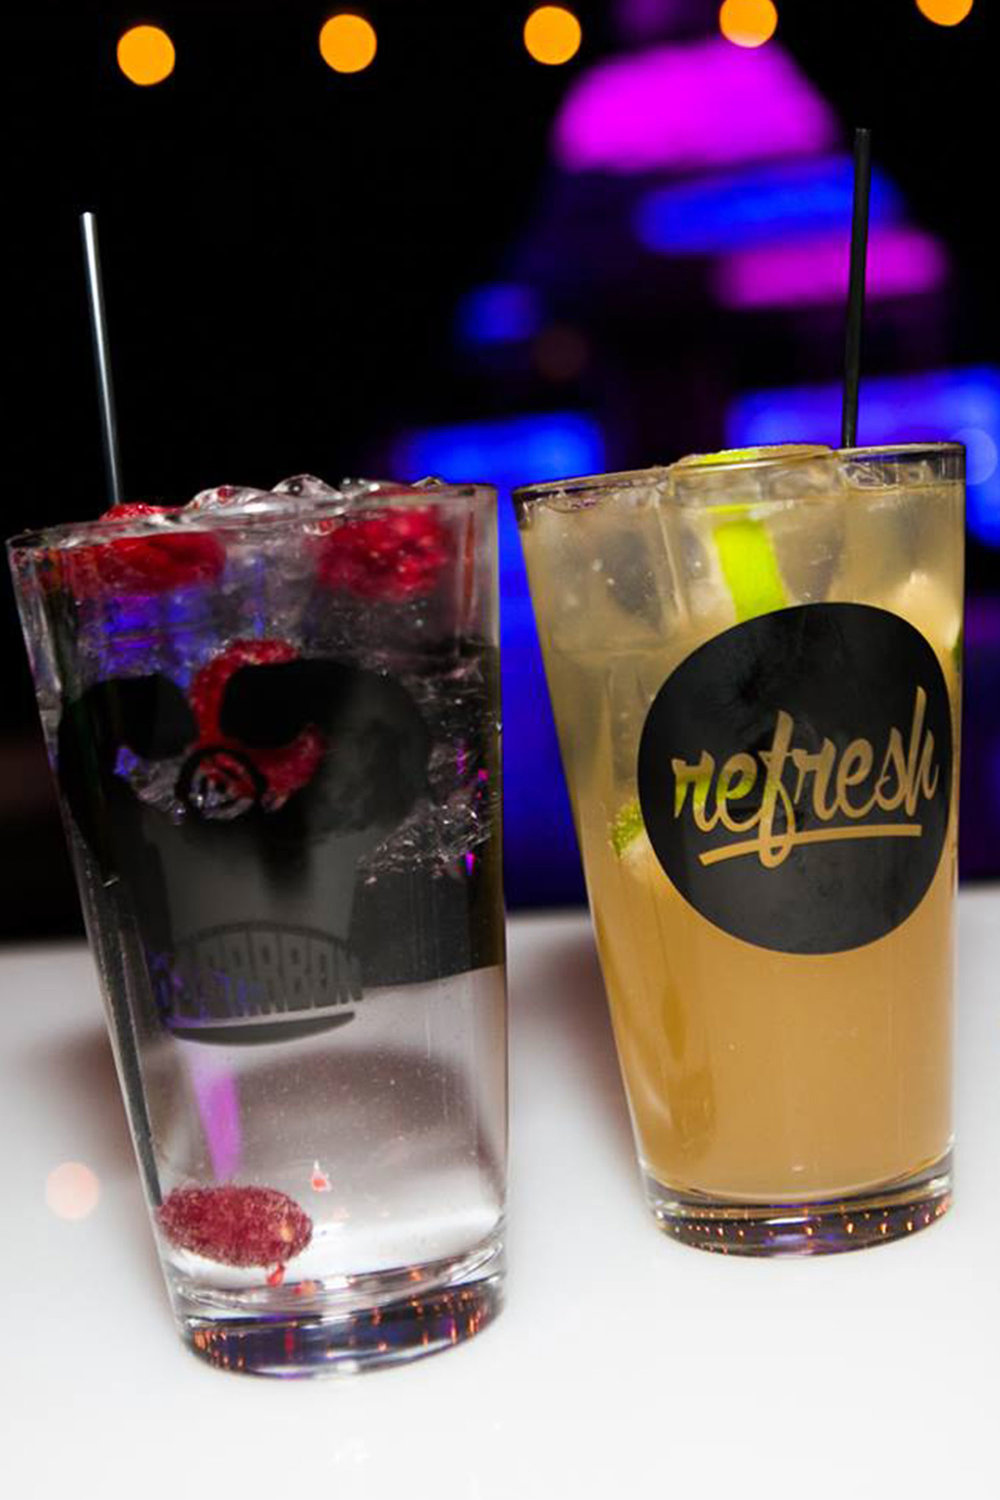 Abode-Venue-Refresh-glasses.jpg